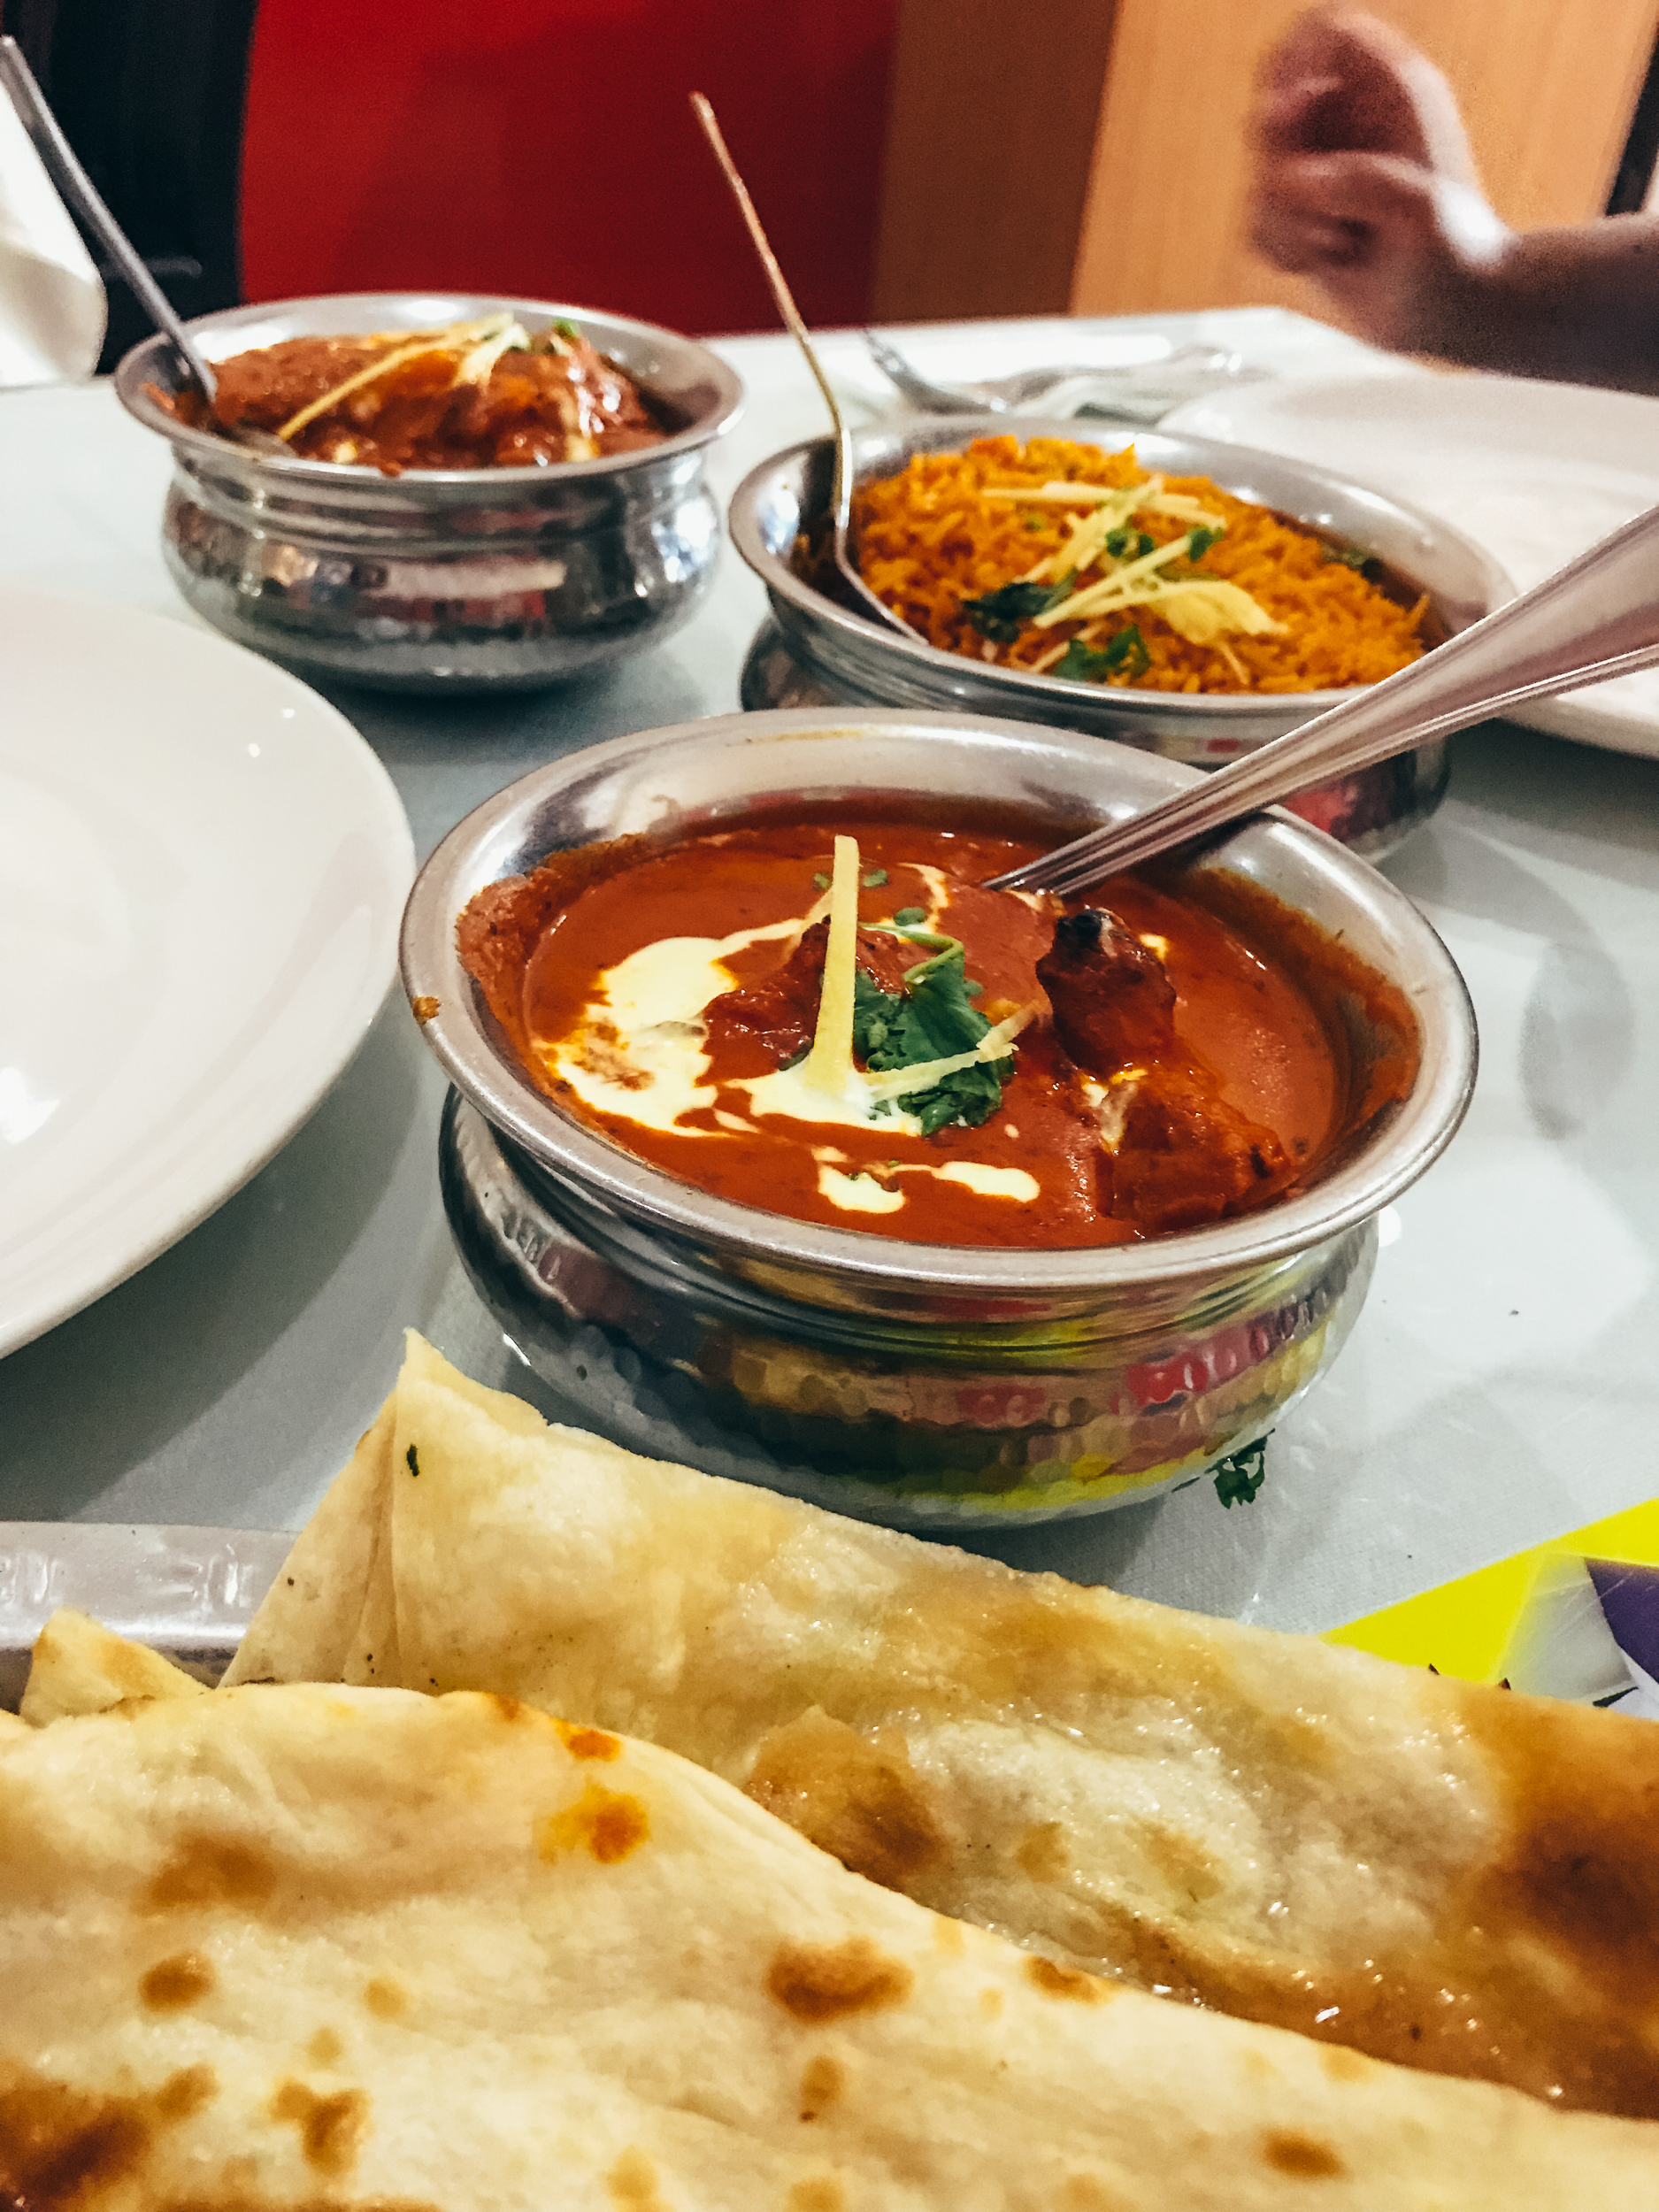 One of our meals at Mogul Mahal